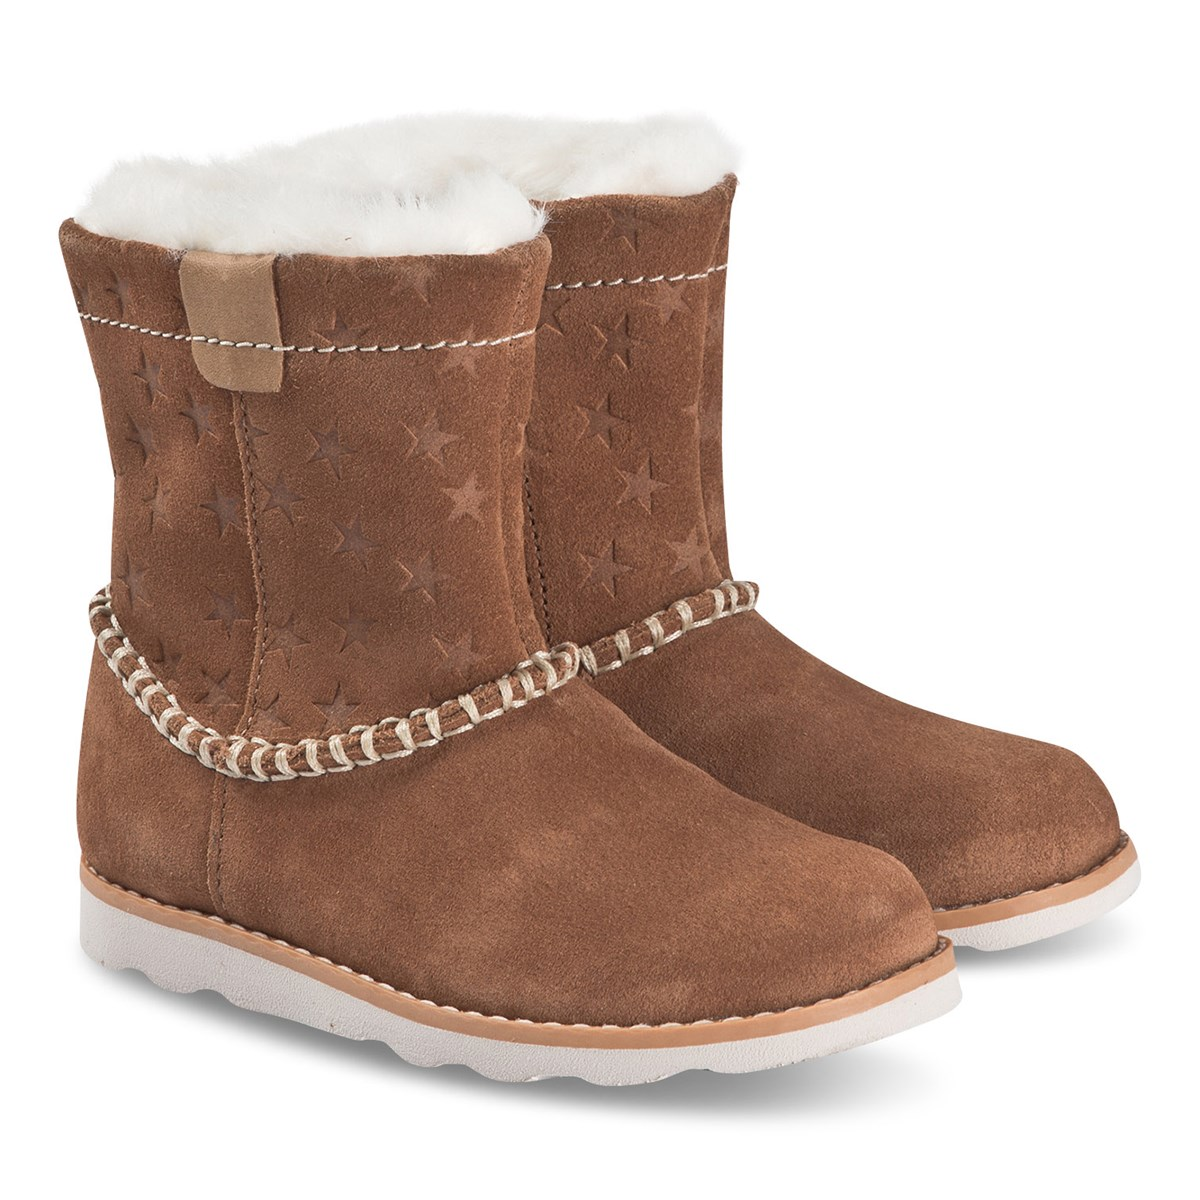 Clarks Tan Suede Crown Piper Star Boots